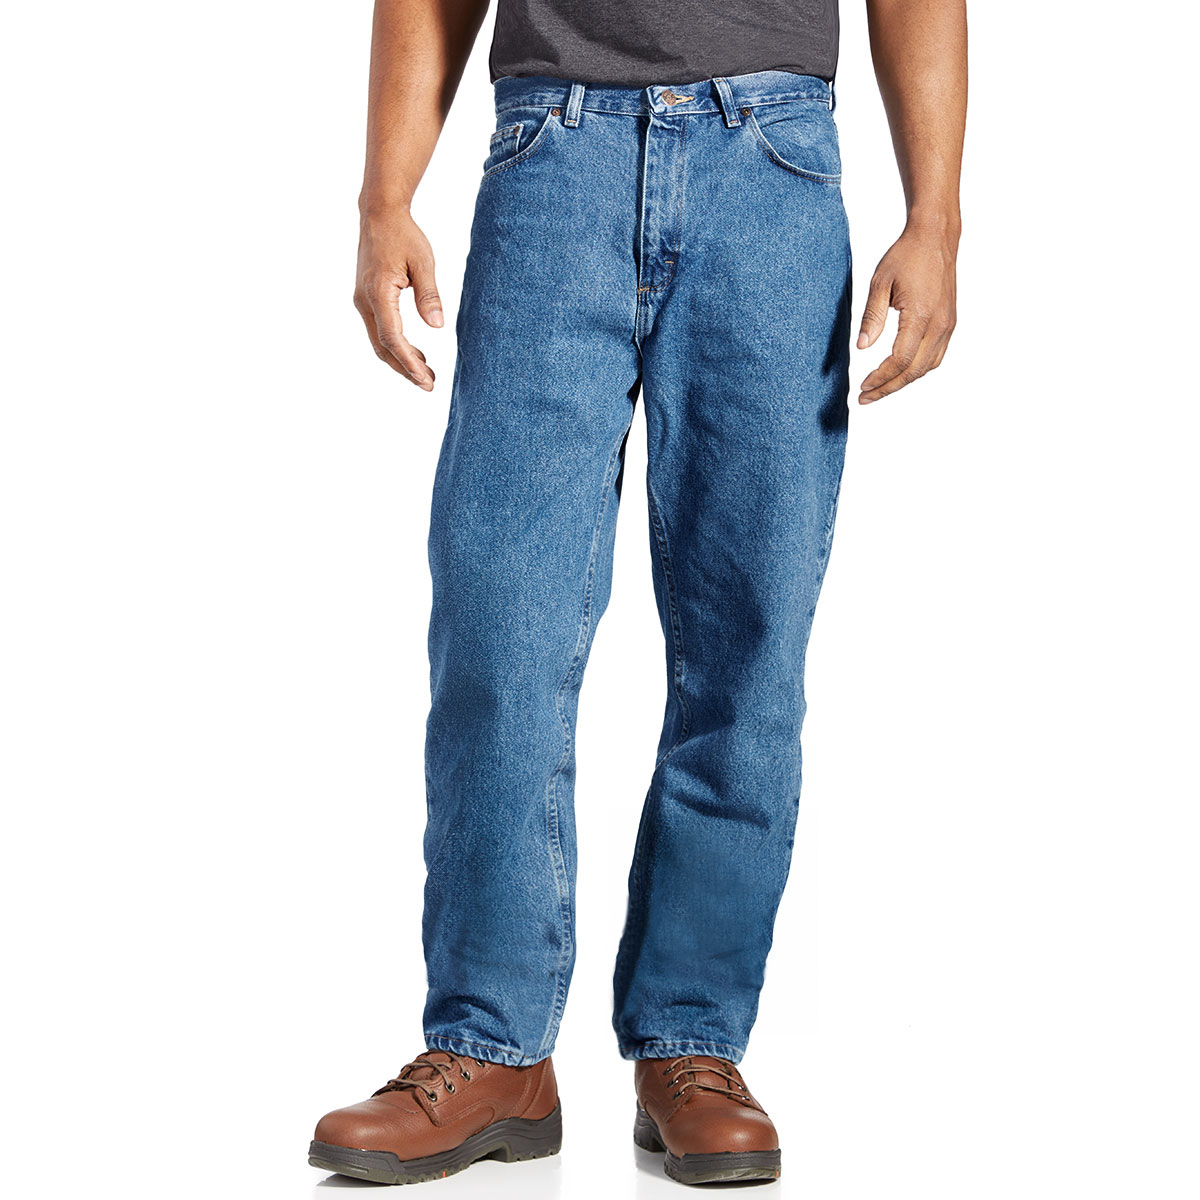 Relaxed Fit & Loose Fit Jeans for Men